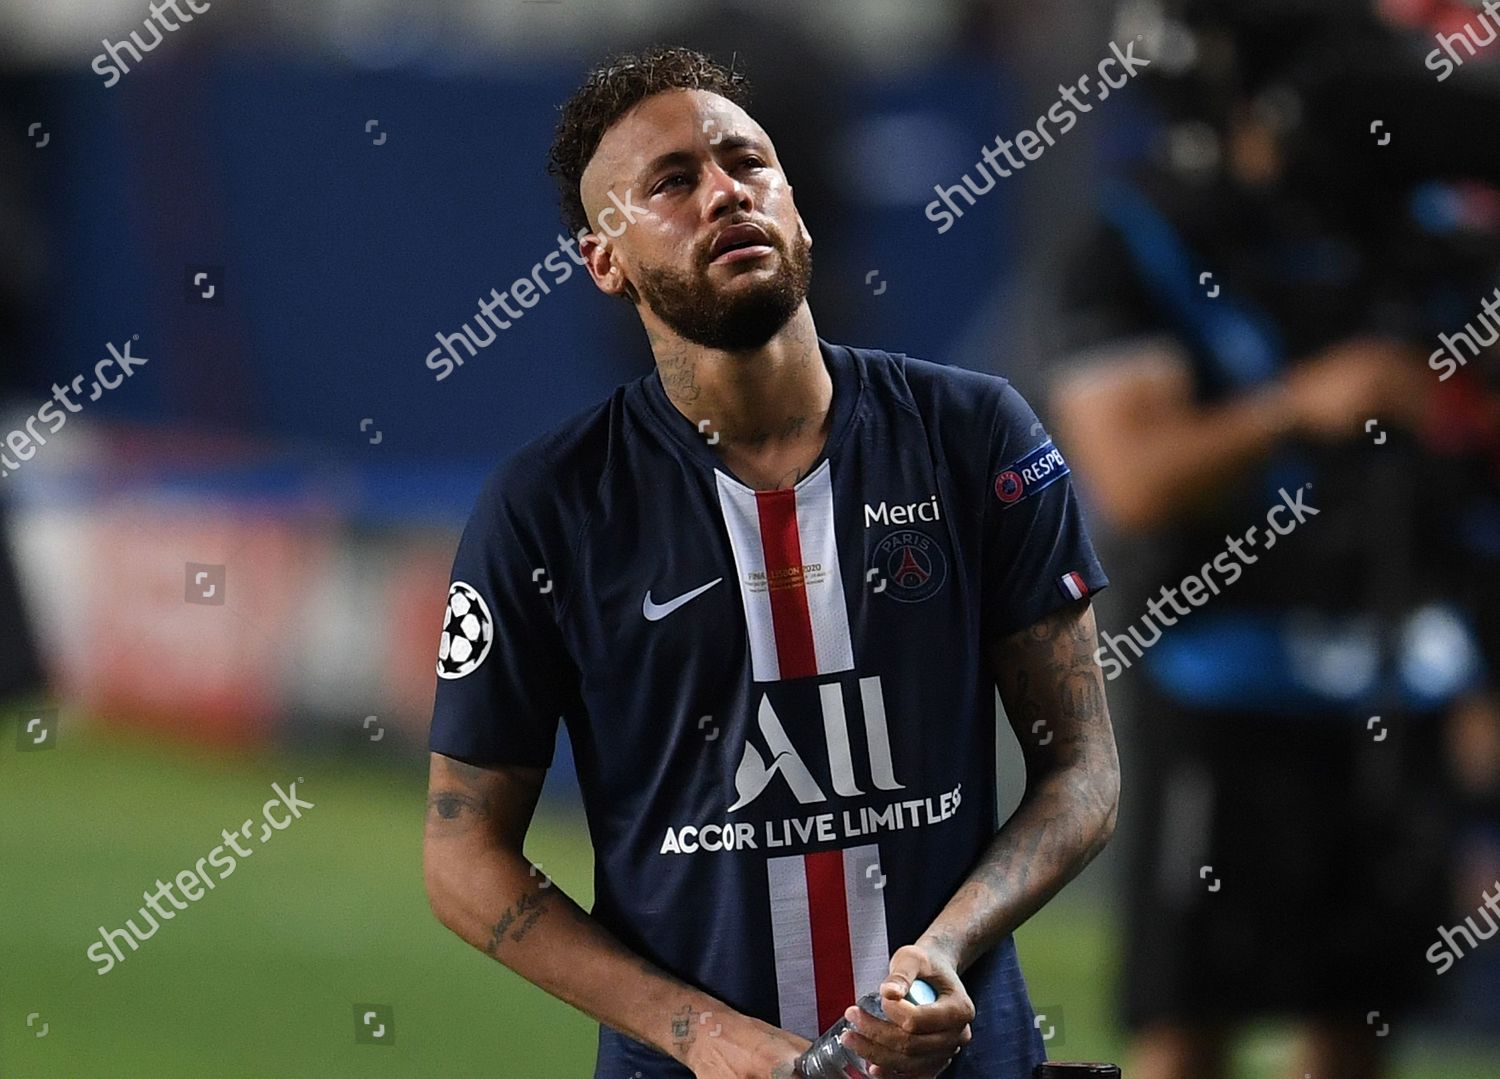 Neymar Psg After Uefa Champions League Final Editorial Stock Photo Stock Image Shutterstock